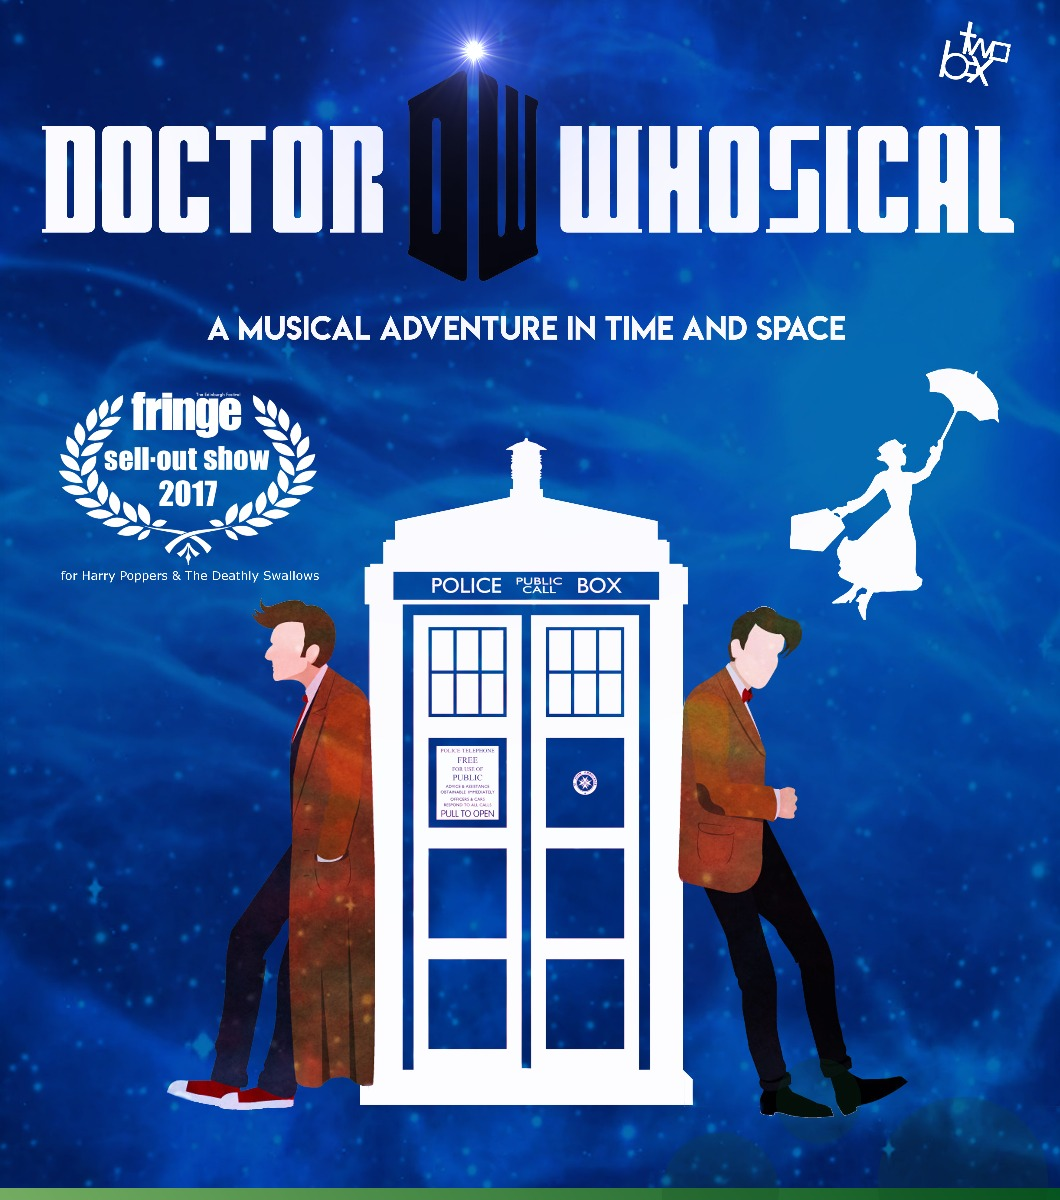 Doctor Whosical